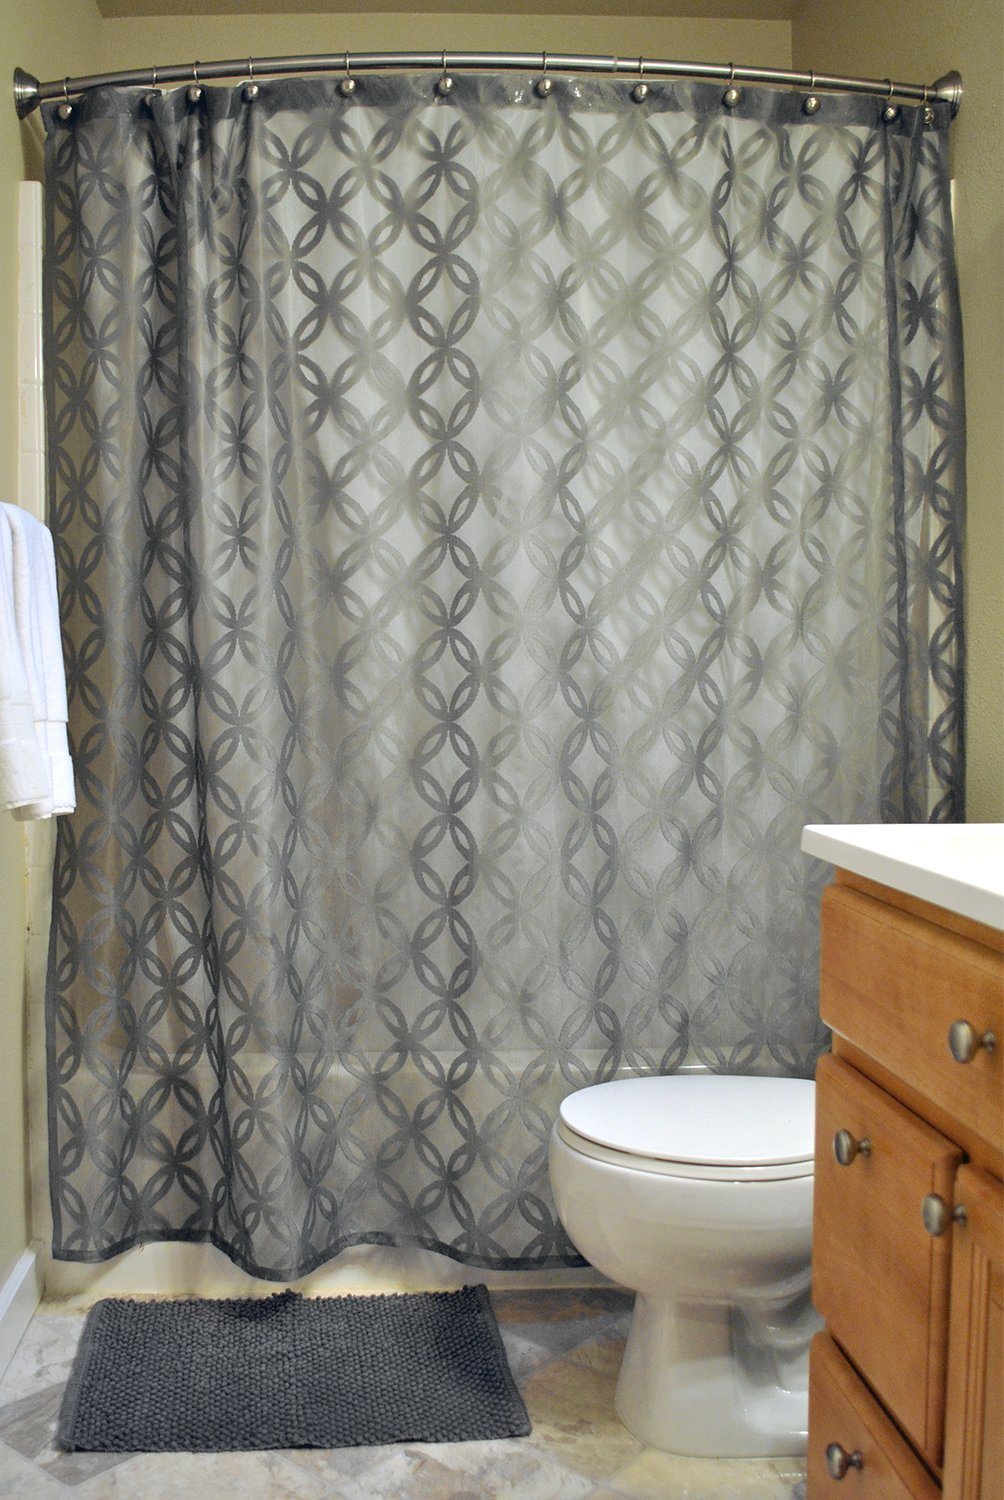 Get Quotations DII Everyday 100 Polyester Extra Long Bath Fabric Shower Curtain For Bathroom 72x72